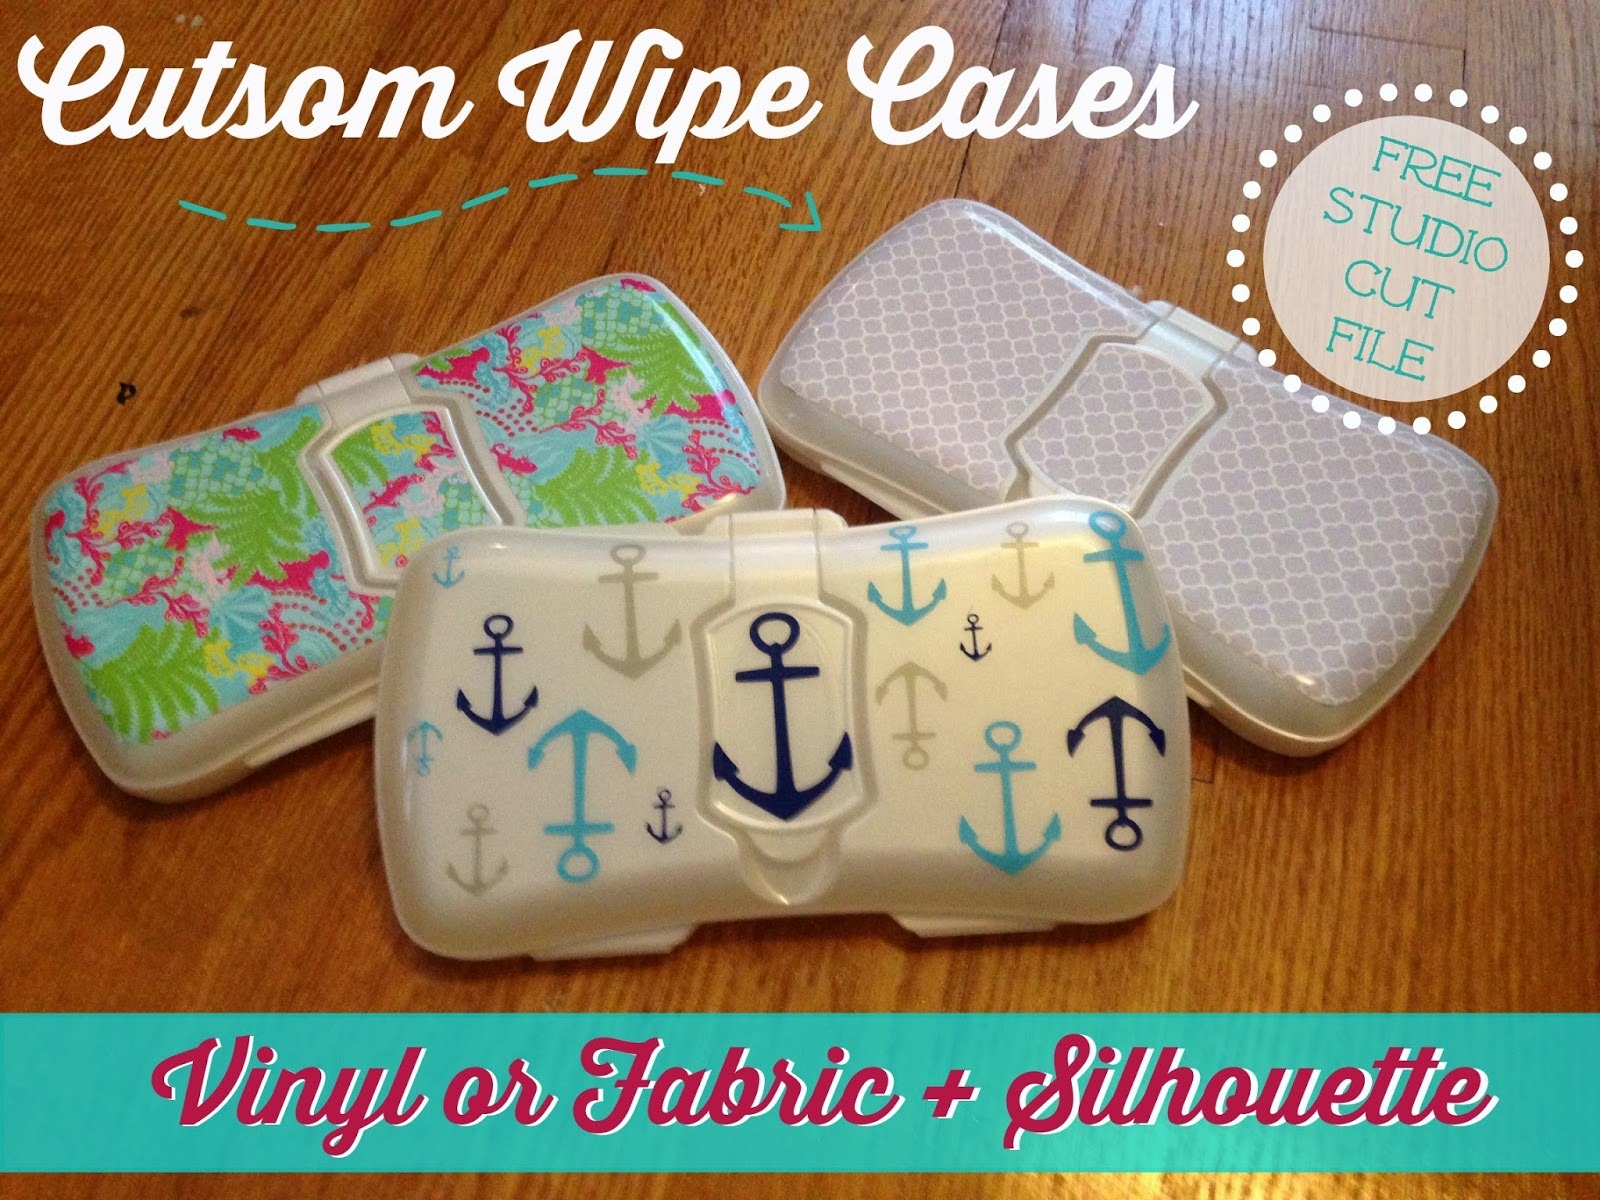 Custom, baby wipe case, Silhouette, Silhouette Studio, free cut file